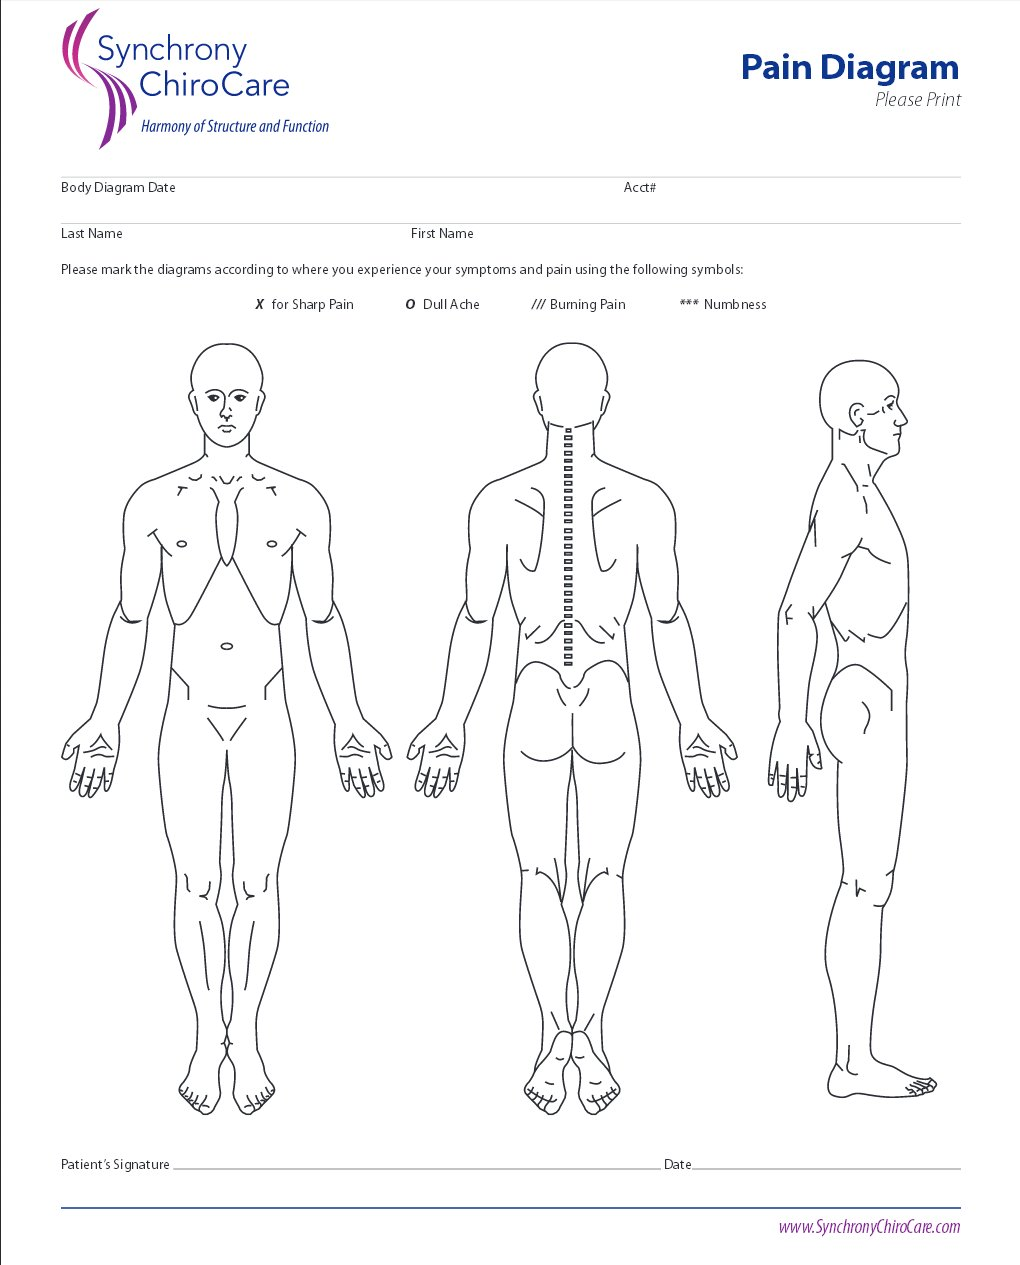 Synchrony ChiroCare Pain Diagram Form